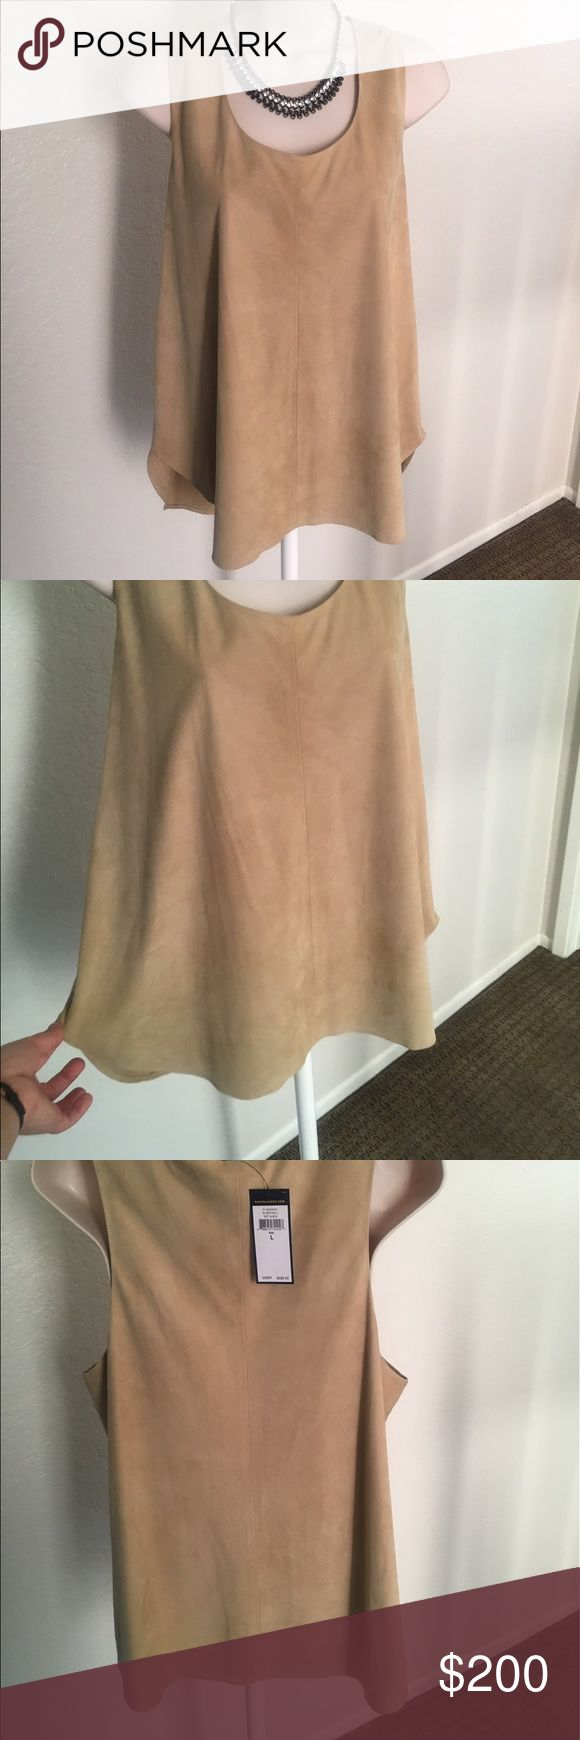 """🎉ON SALE! 🎉 100% goat suede tank by Ralph Lauren NWT. This shirt is perfect for the Kentucky Derby, a gala, or a fancy date night. Would look great with a skirt or with slacks. Flowy enough to not be skin tight and easily hides those """"imperfections."""" that we all hate 😉 Was asking $200, now asking $145! Don't like the price? Make me an offer! 🙃 Polo by Ralph Lauren Tops Tank Tops"""